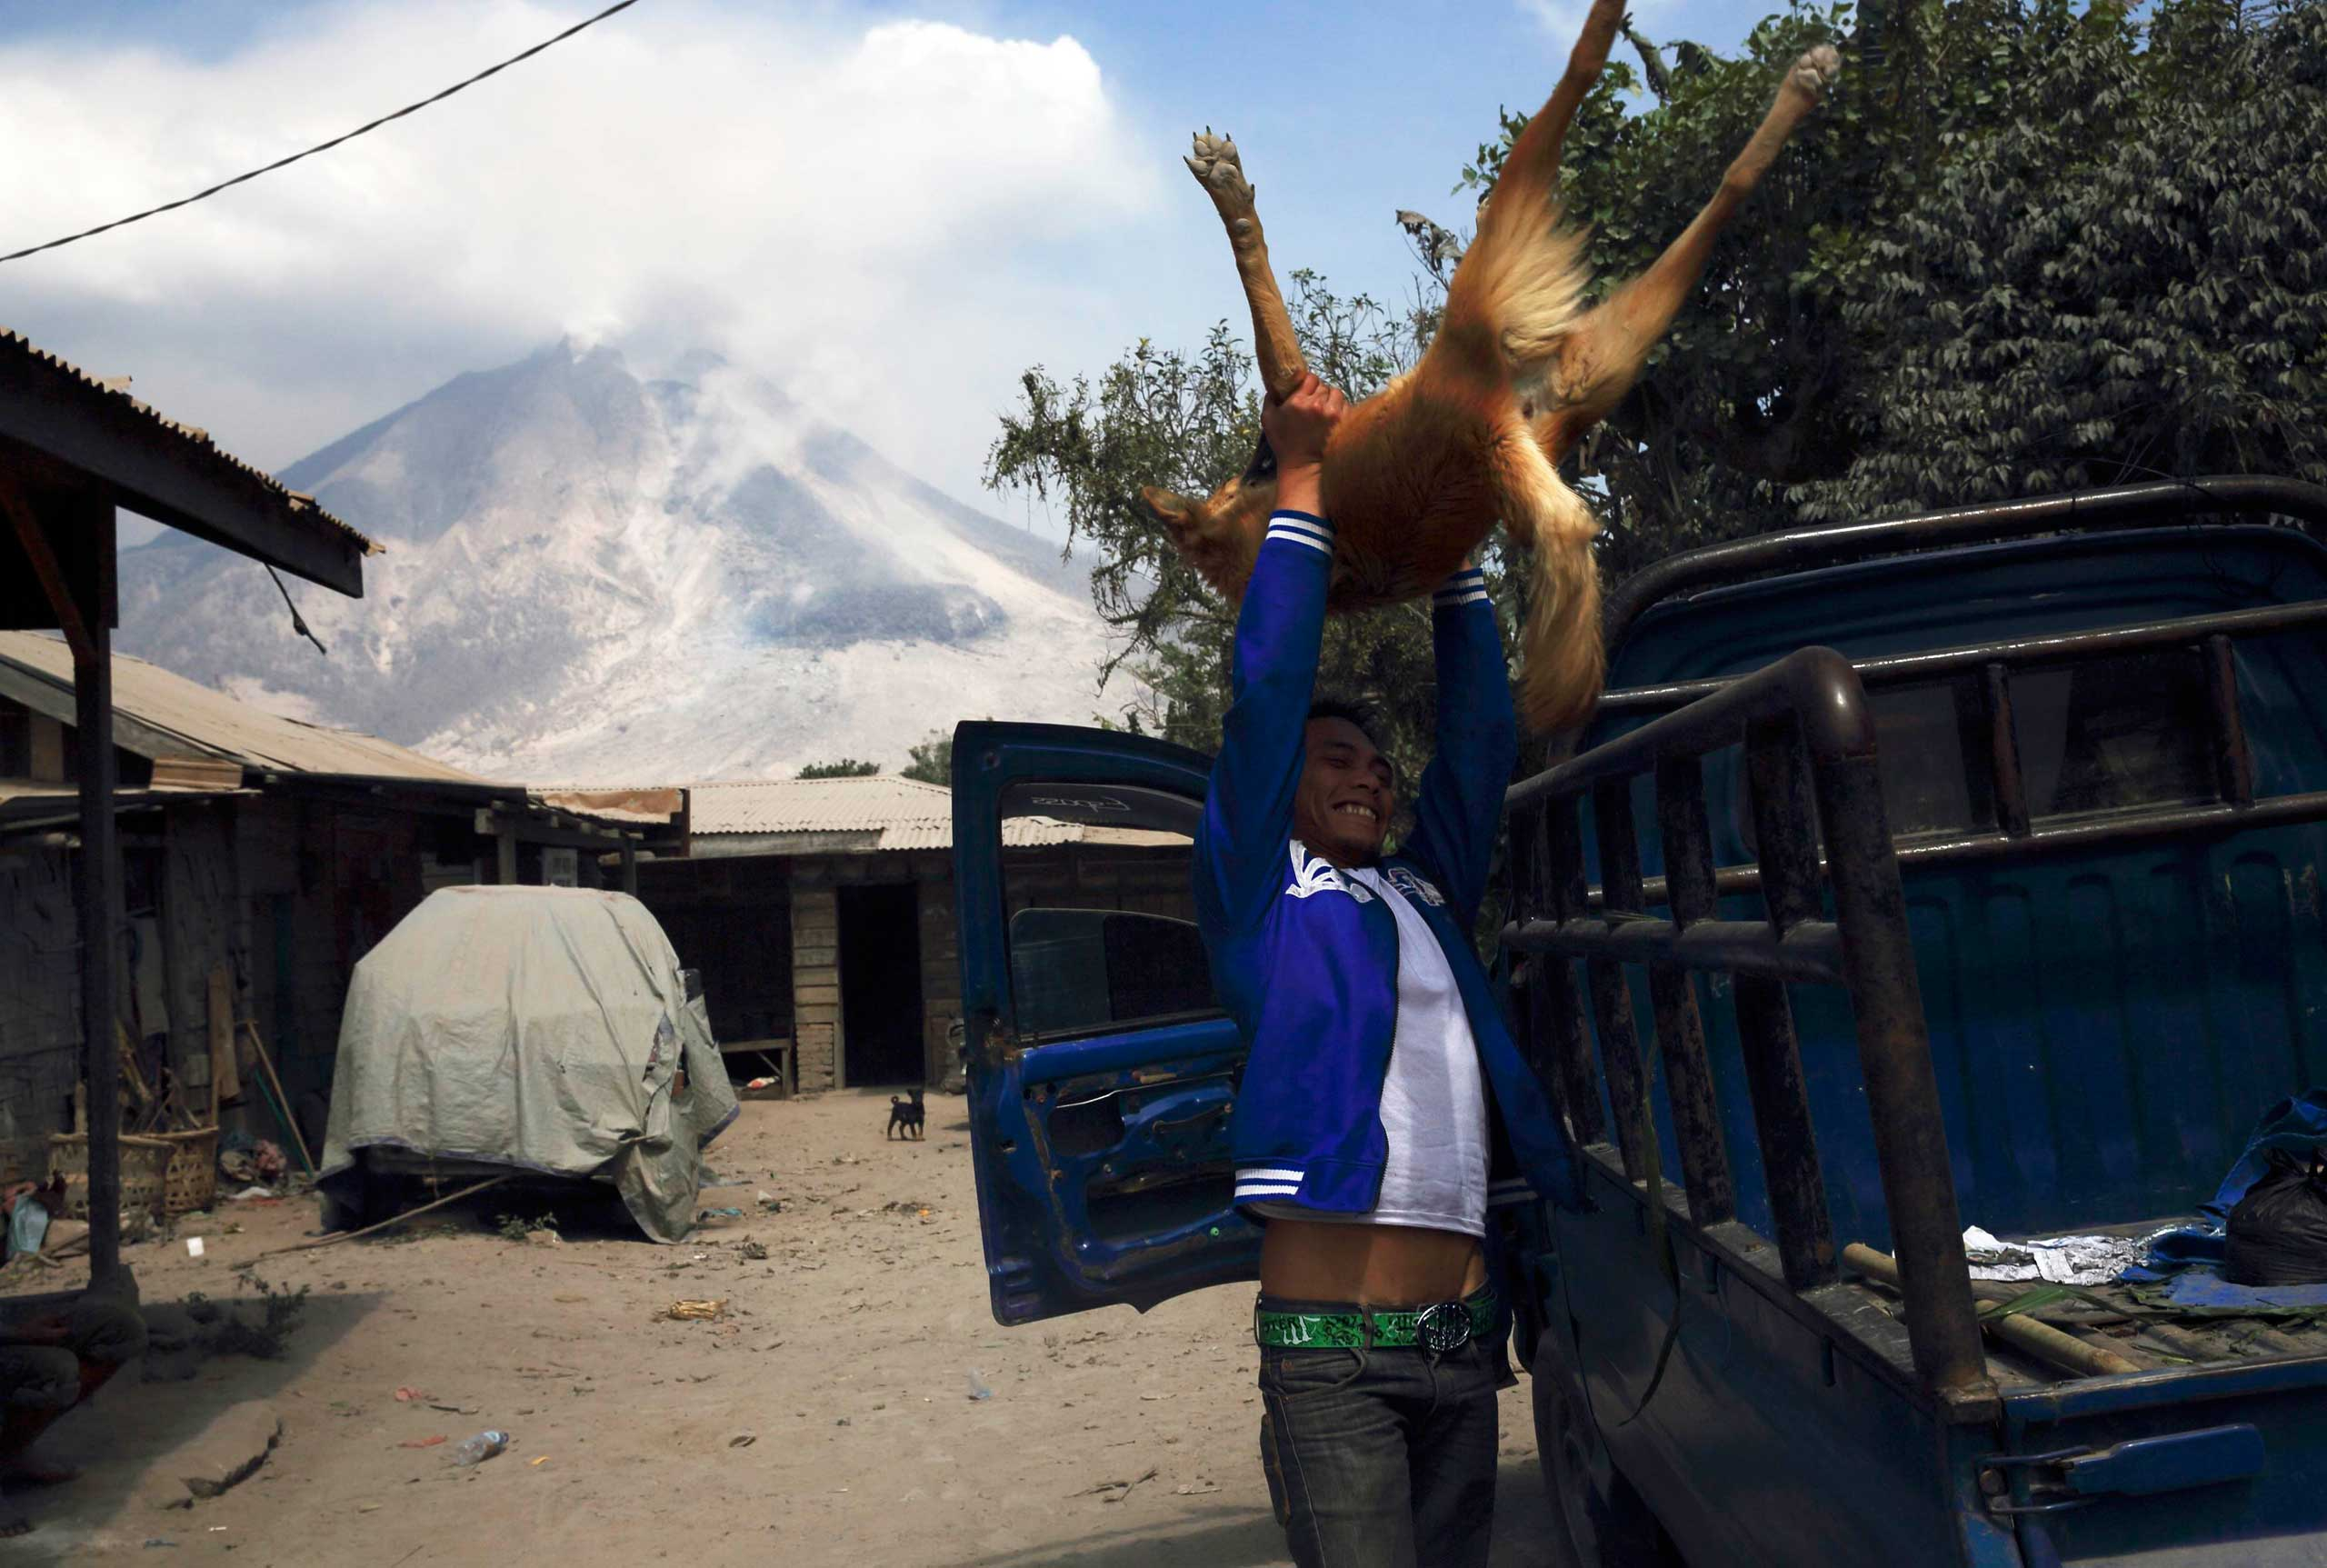 A villager lifts his dog onto a truck to evacuate as Mount Sinabung spews ash at Pintu Besi village in Karo district, North Sumatra province Feb. 5, 2014.